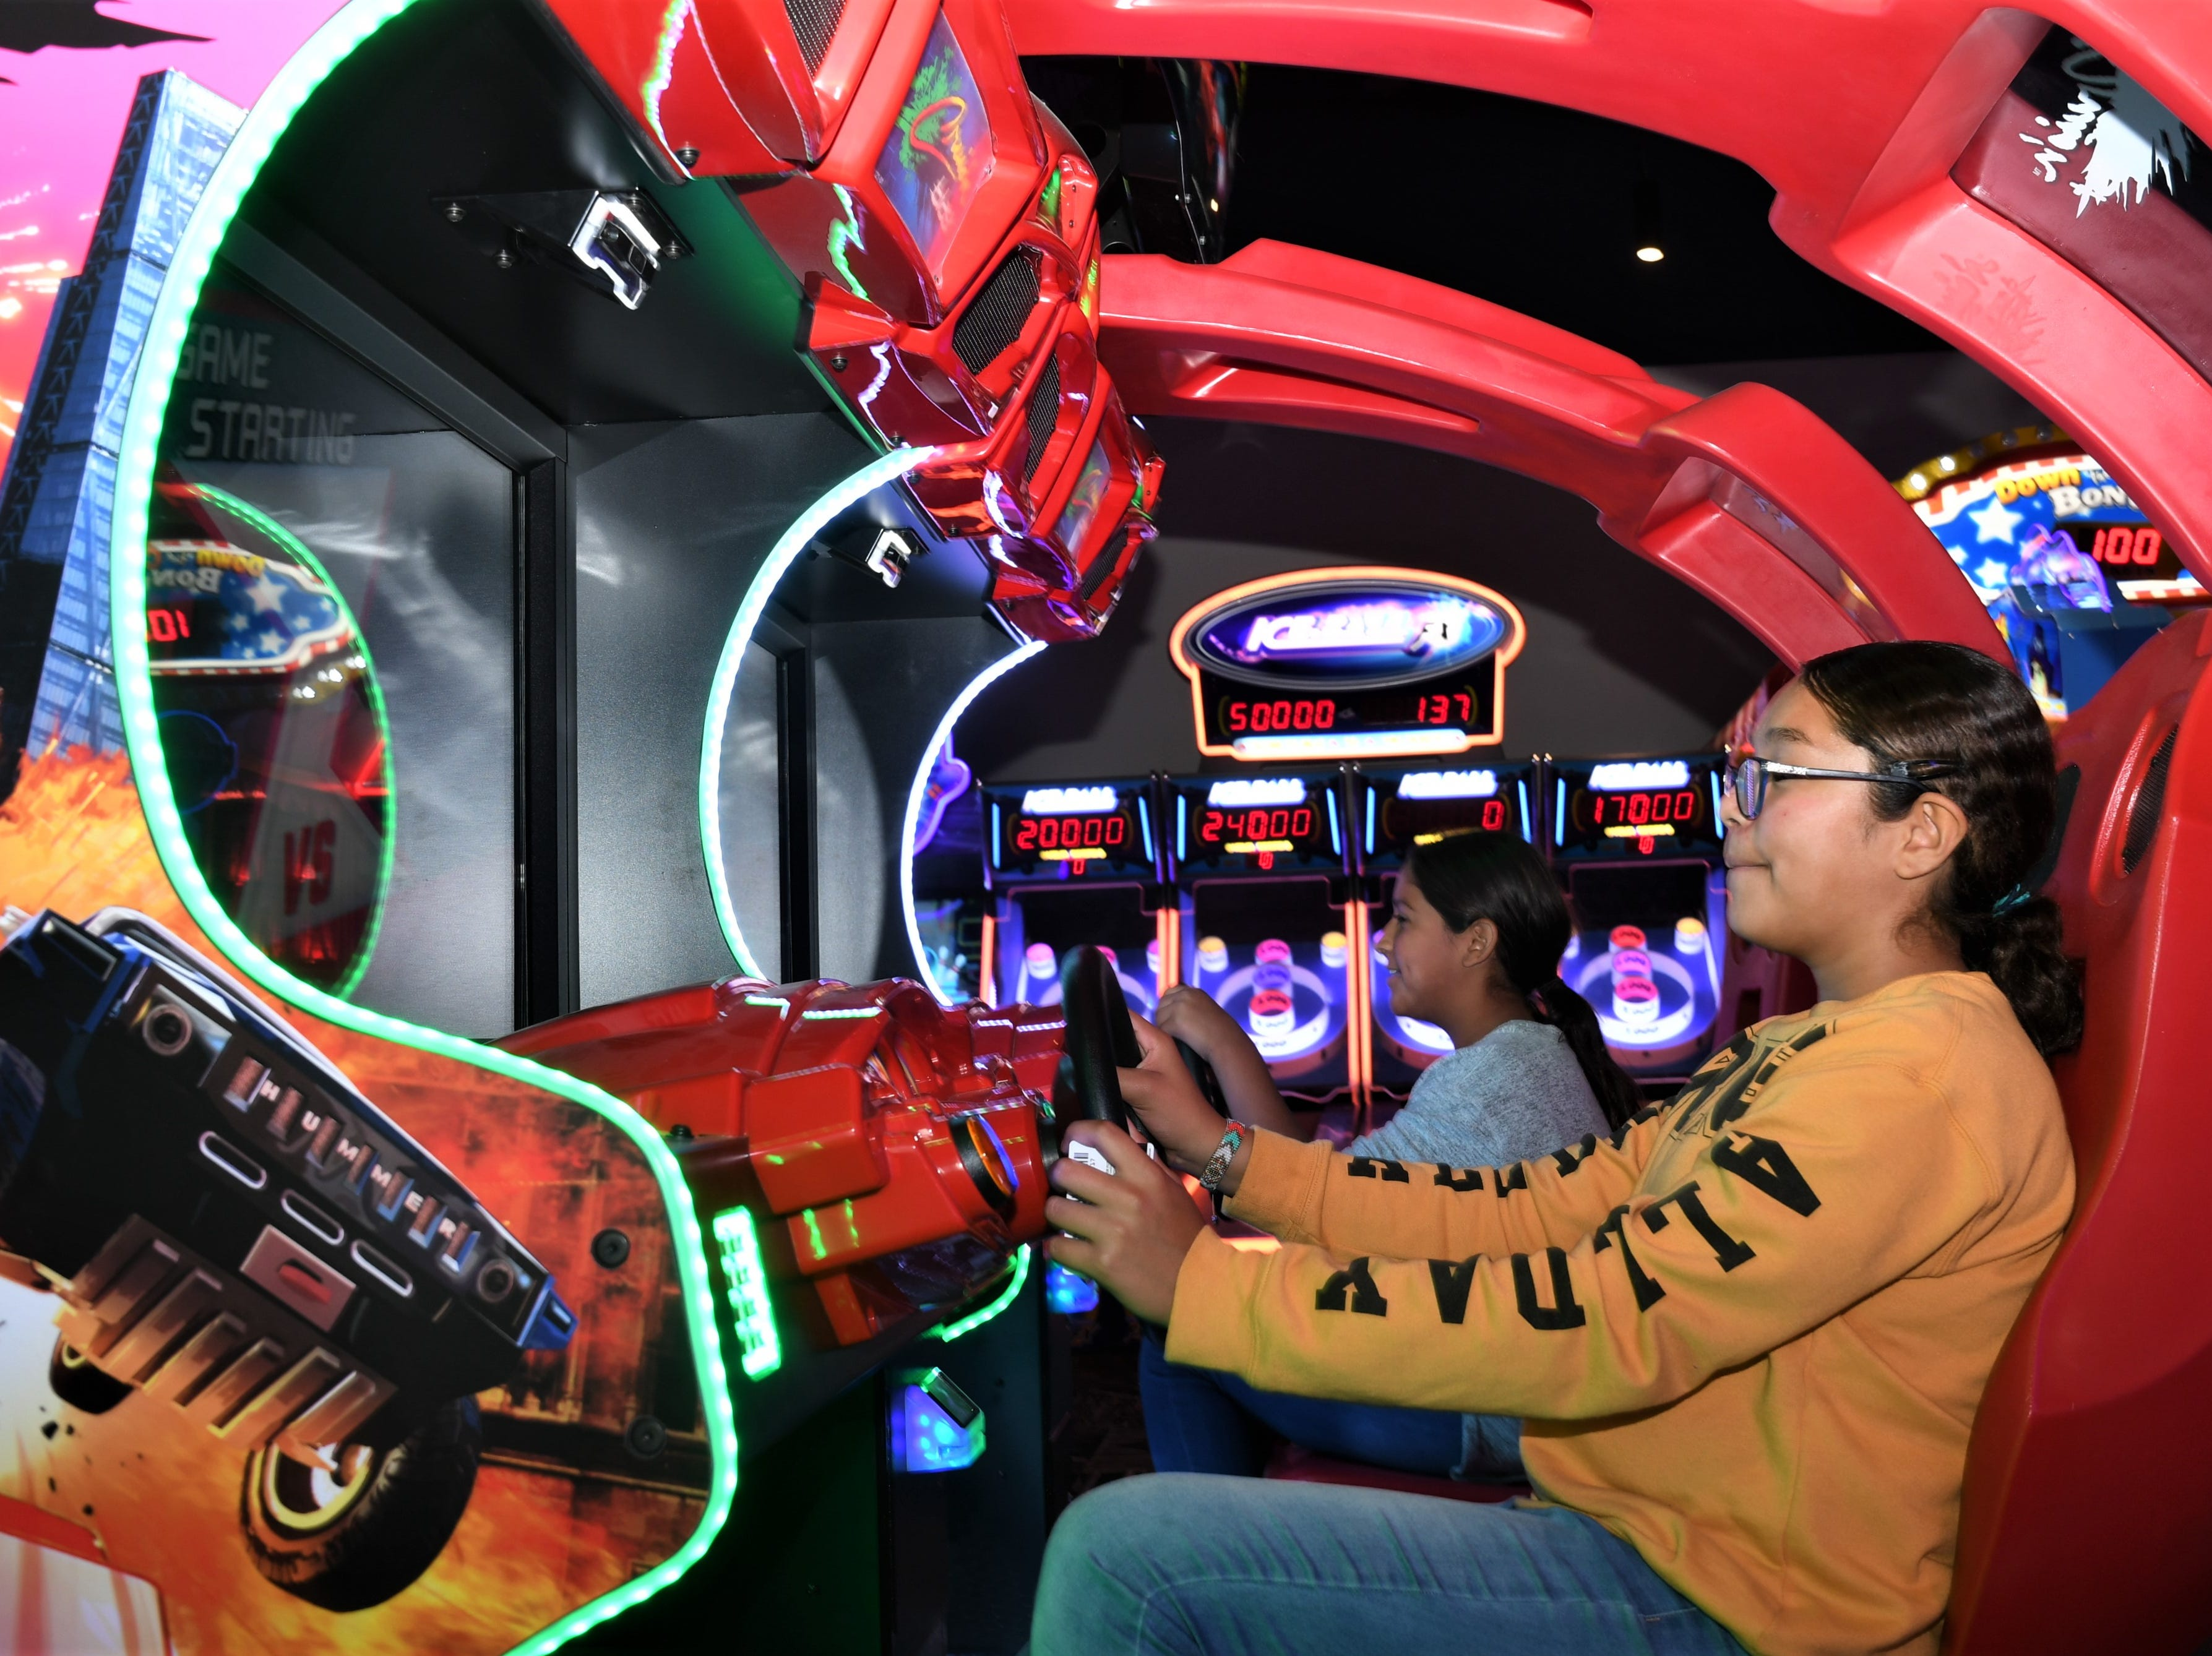 Family-friendly Coyote Entertainment Center coming to Tachi Palace on Nov. 30